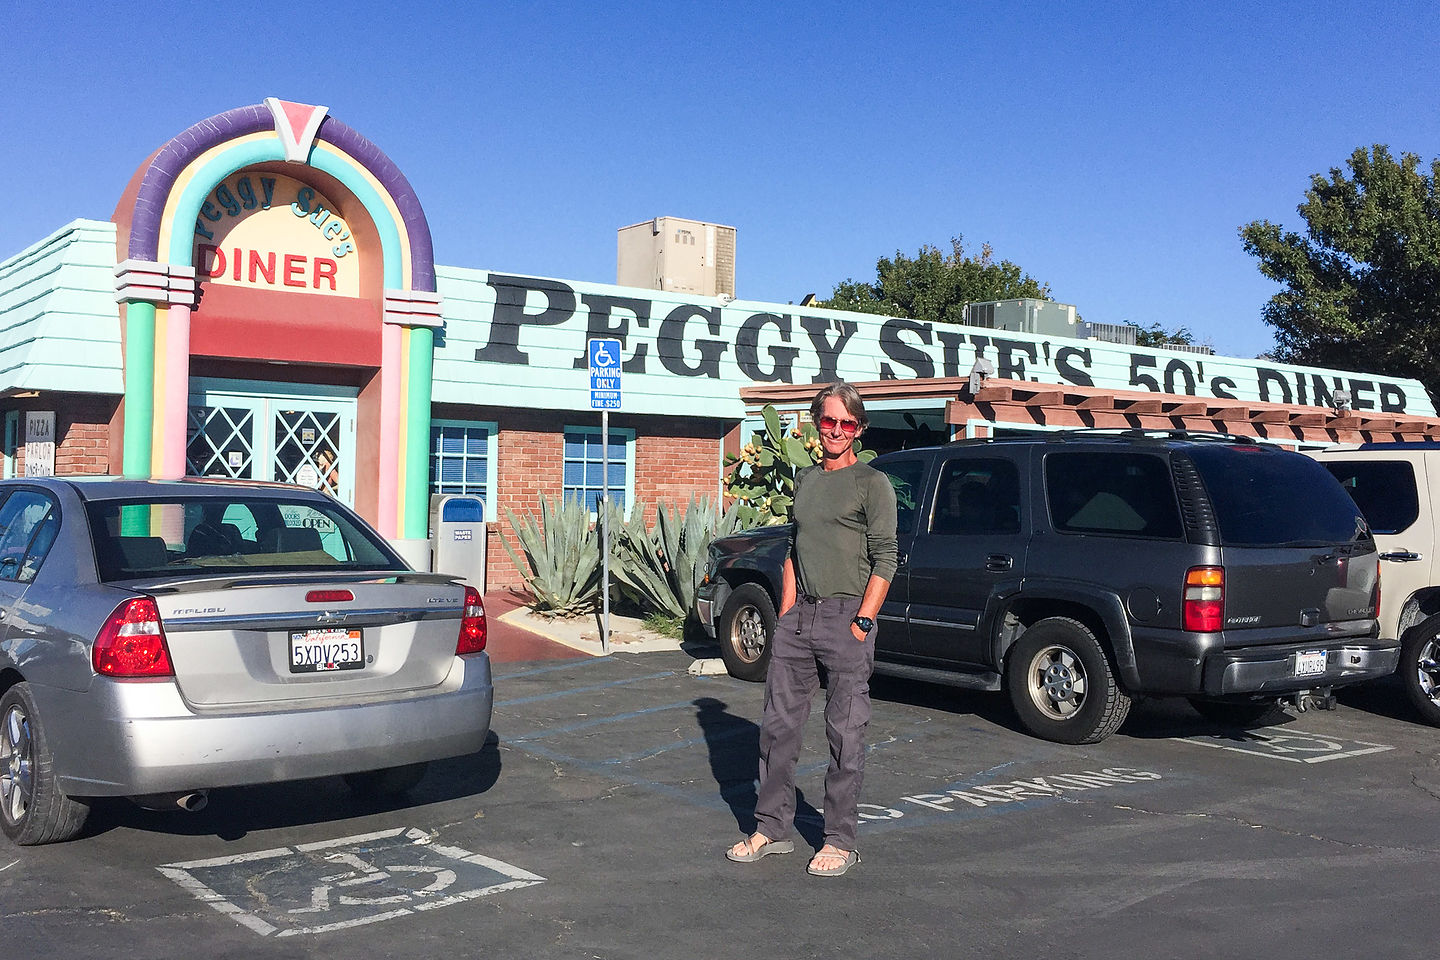 Peggy Sues's 50s Diner